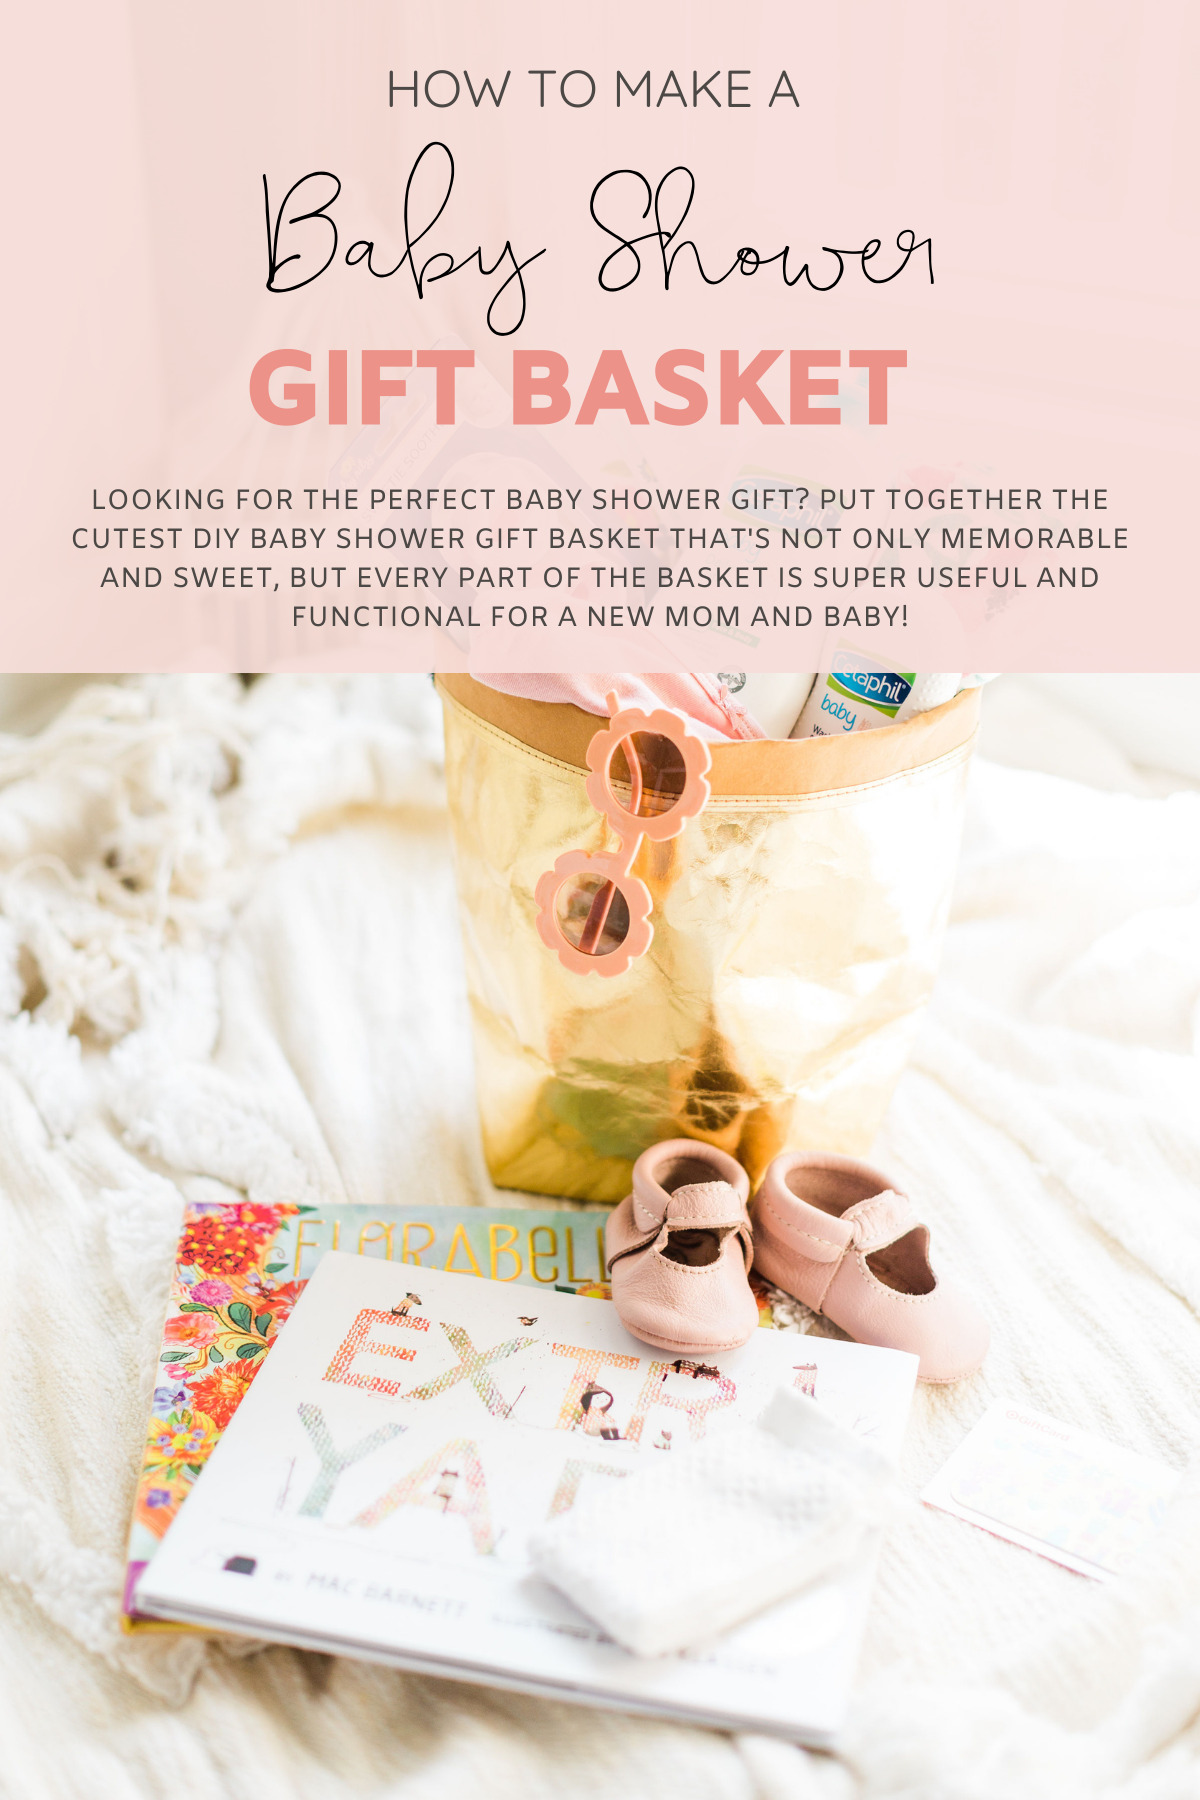 Looking for the perfect baby shower gift? We're sharing how to put together the cutest DIY baby shower gift basket that's not only memorable and sweet, but every part of the basket is super useful and functional, plus, exactly what to put in a baby shower gift basket.   @glitterinclexi   GLITTERINC.COM